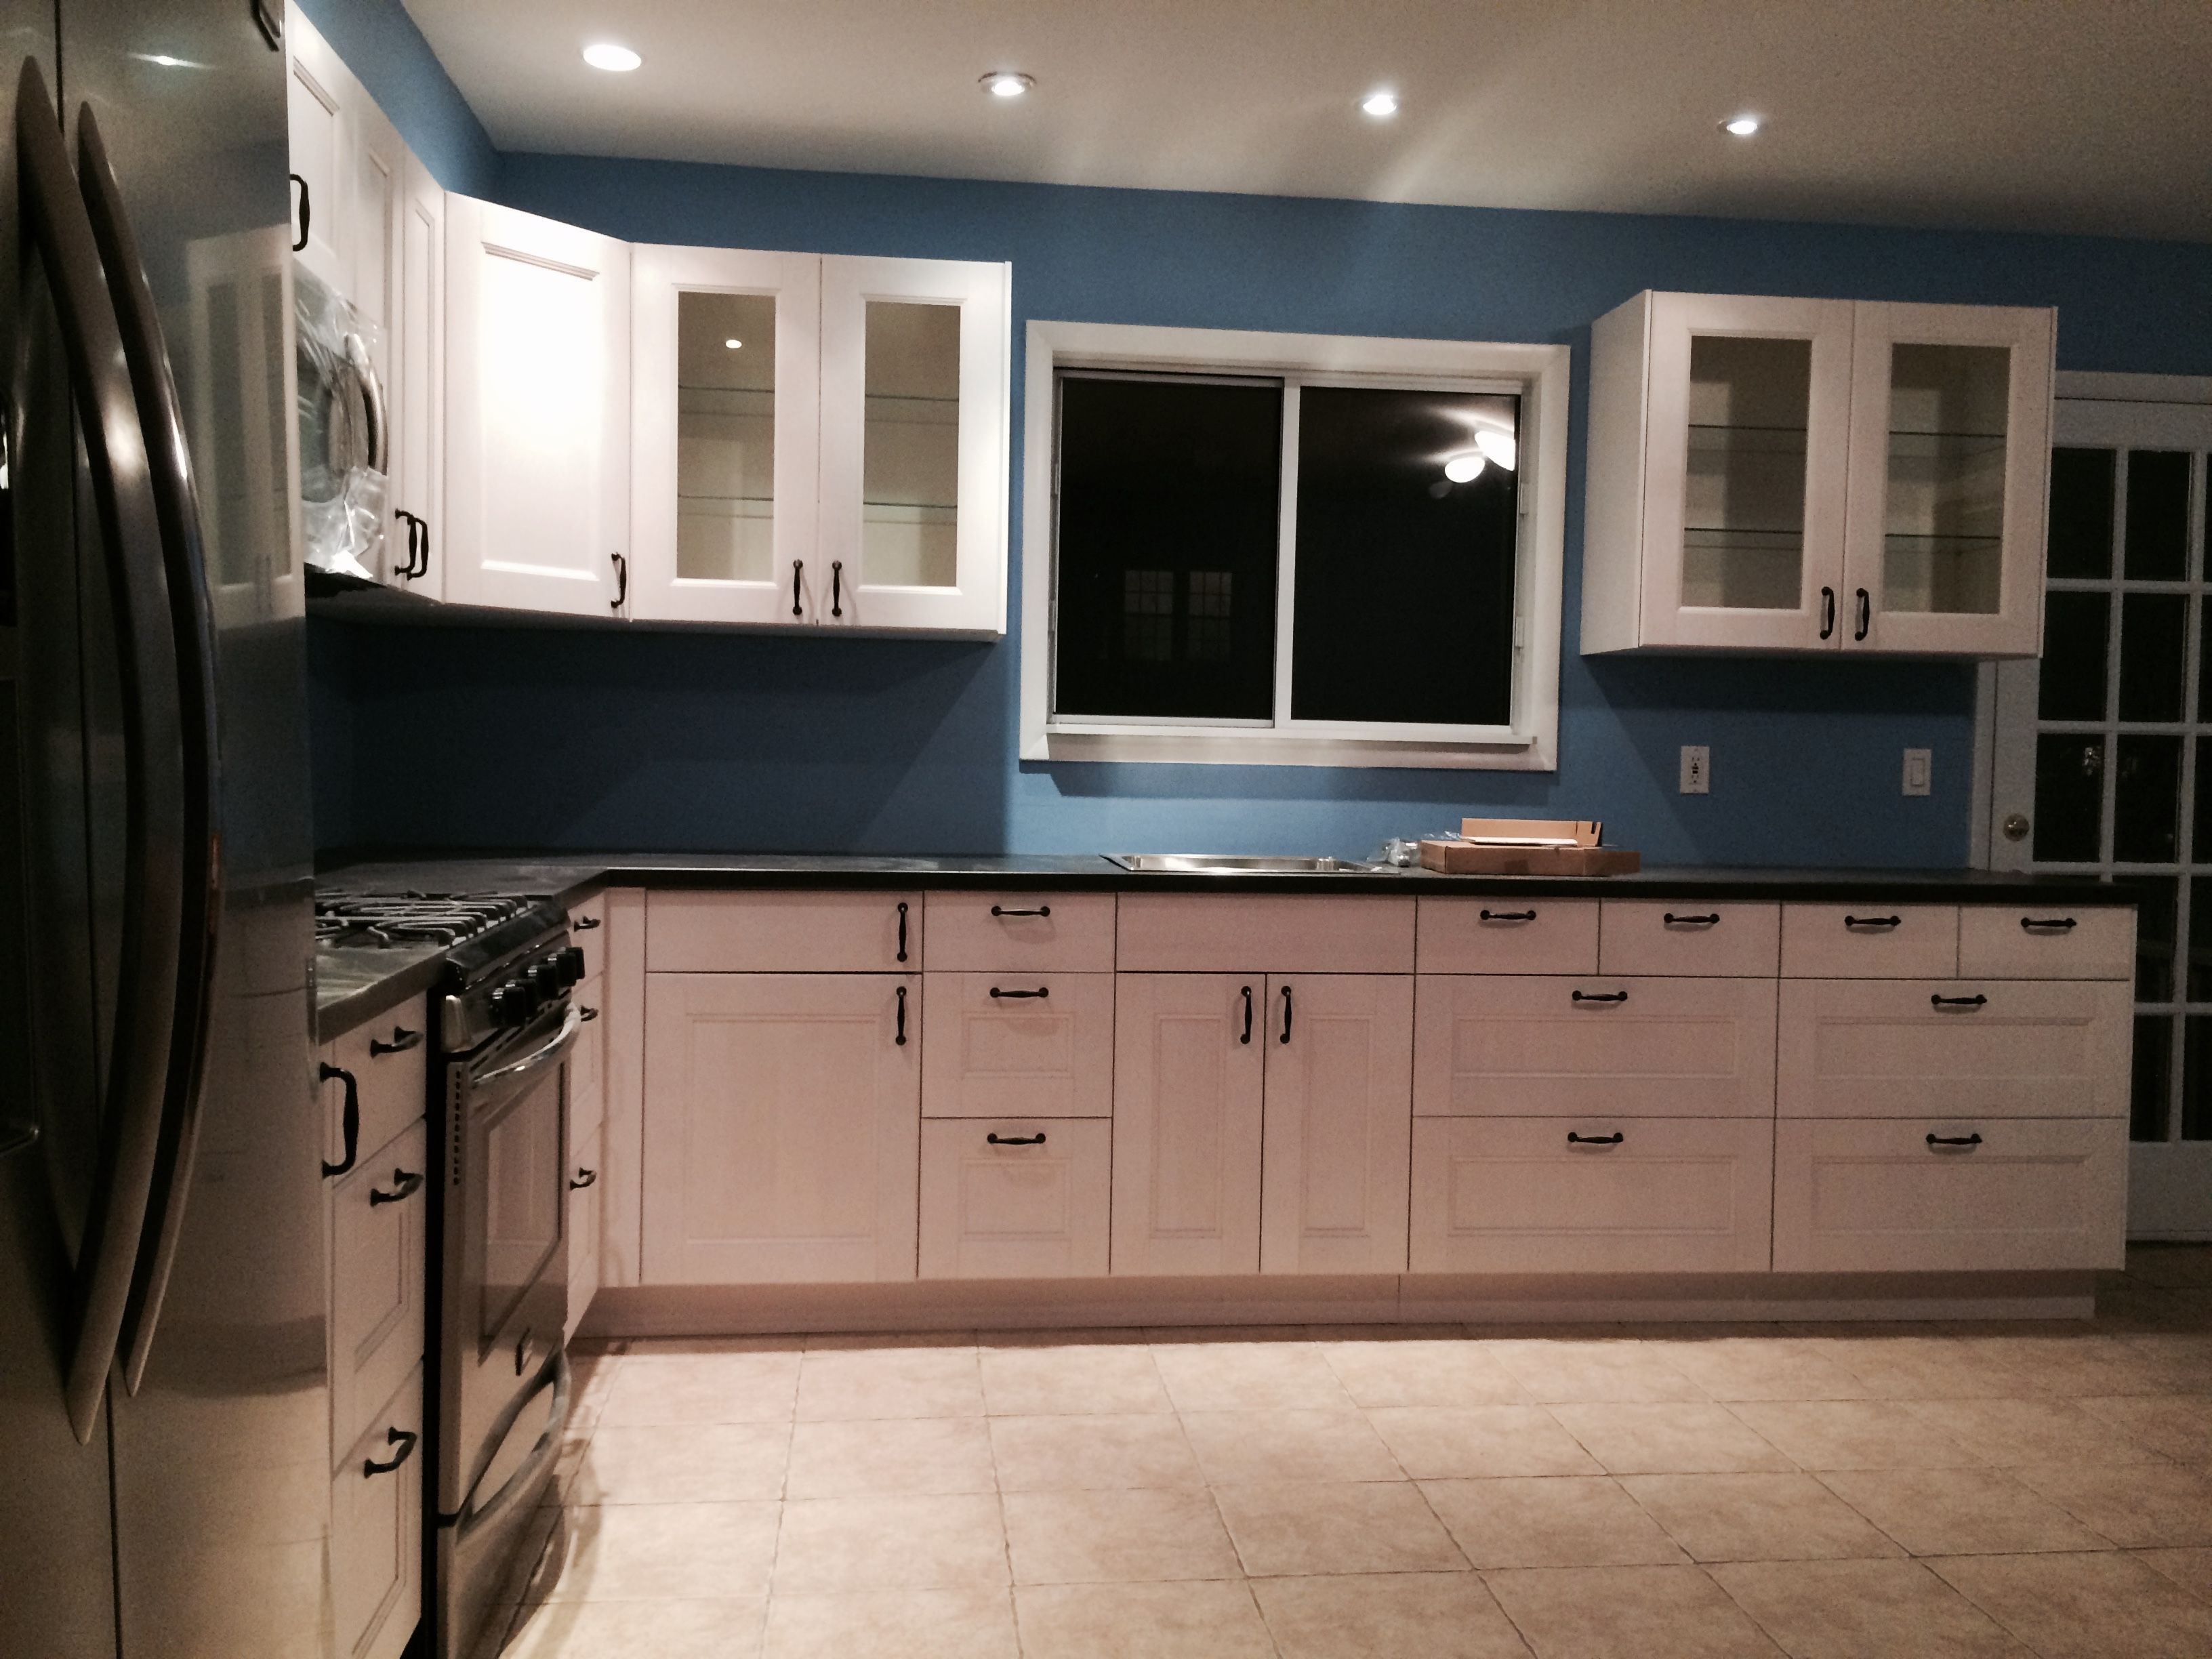 Staten Island, NJ - IKEA Kitchen Cabinet Install | Our project ...